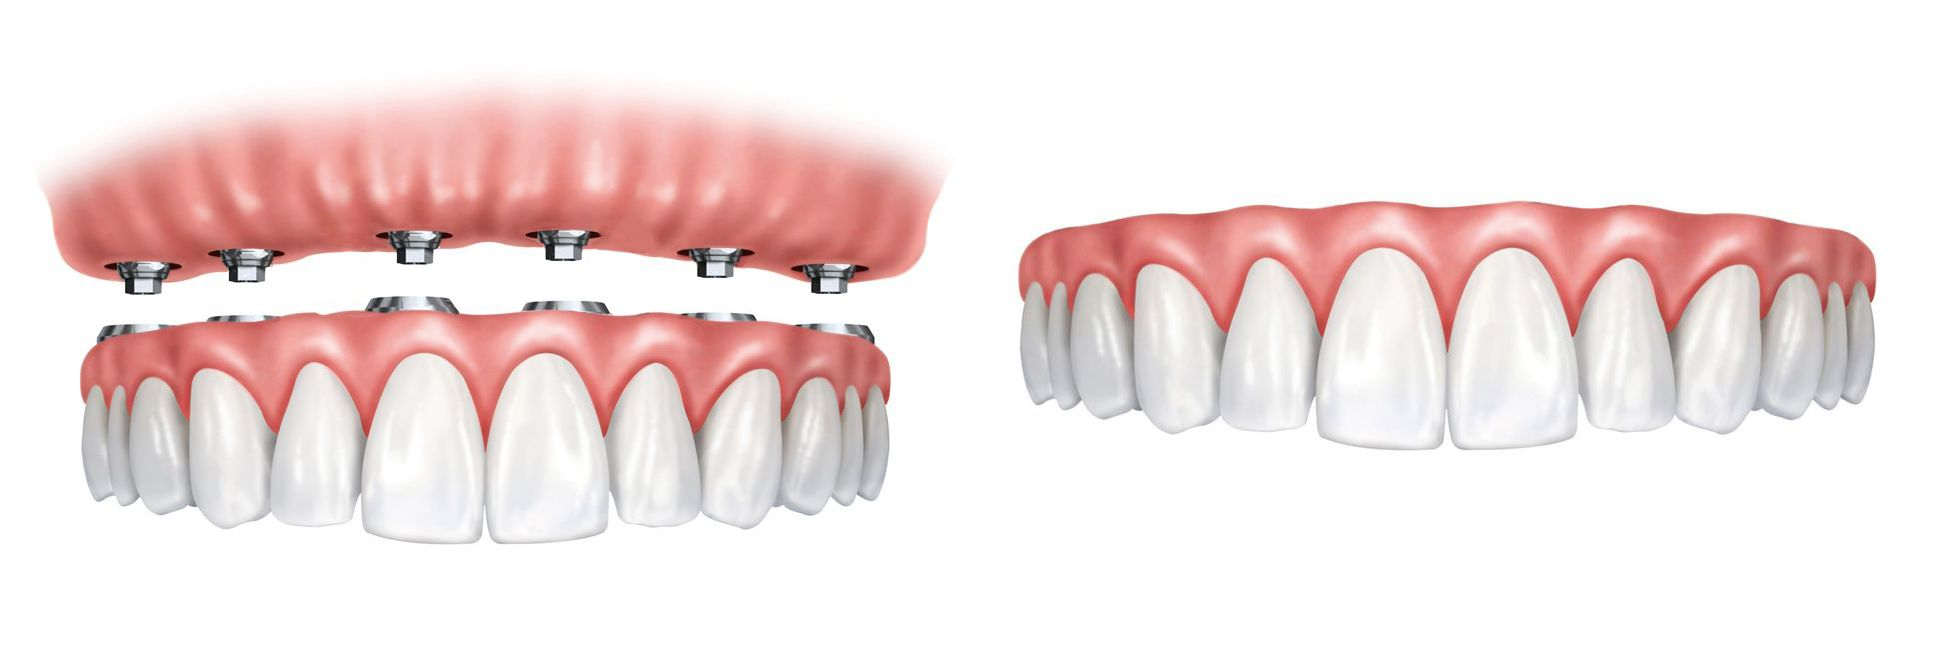 Illustration of a traditional vs. implant-supported denture